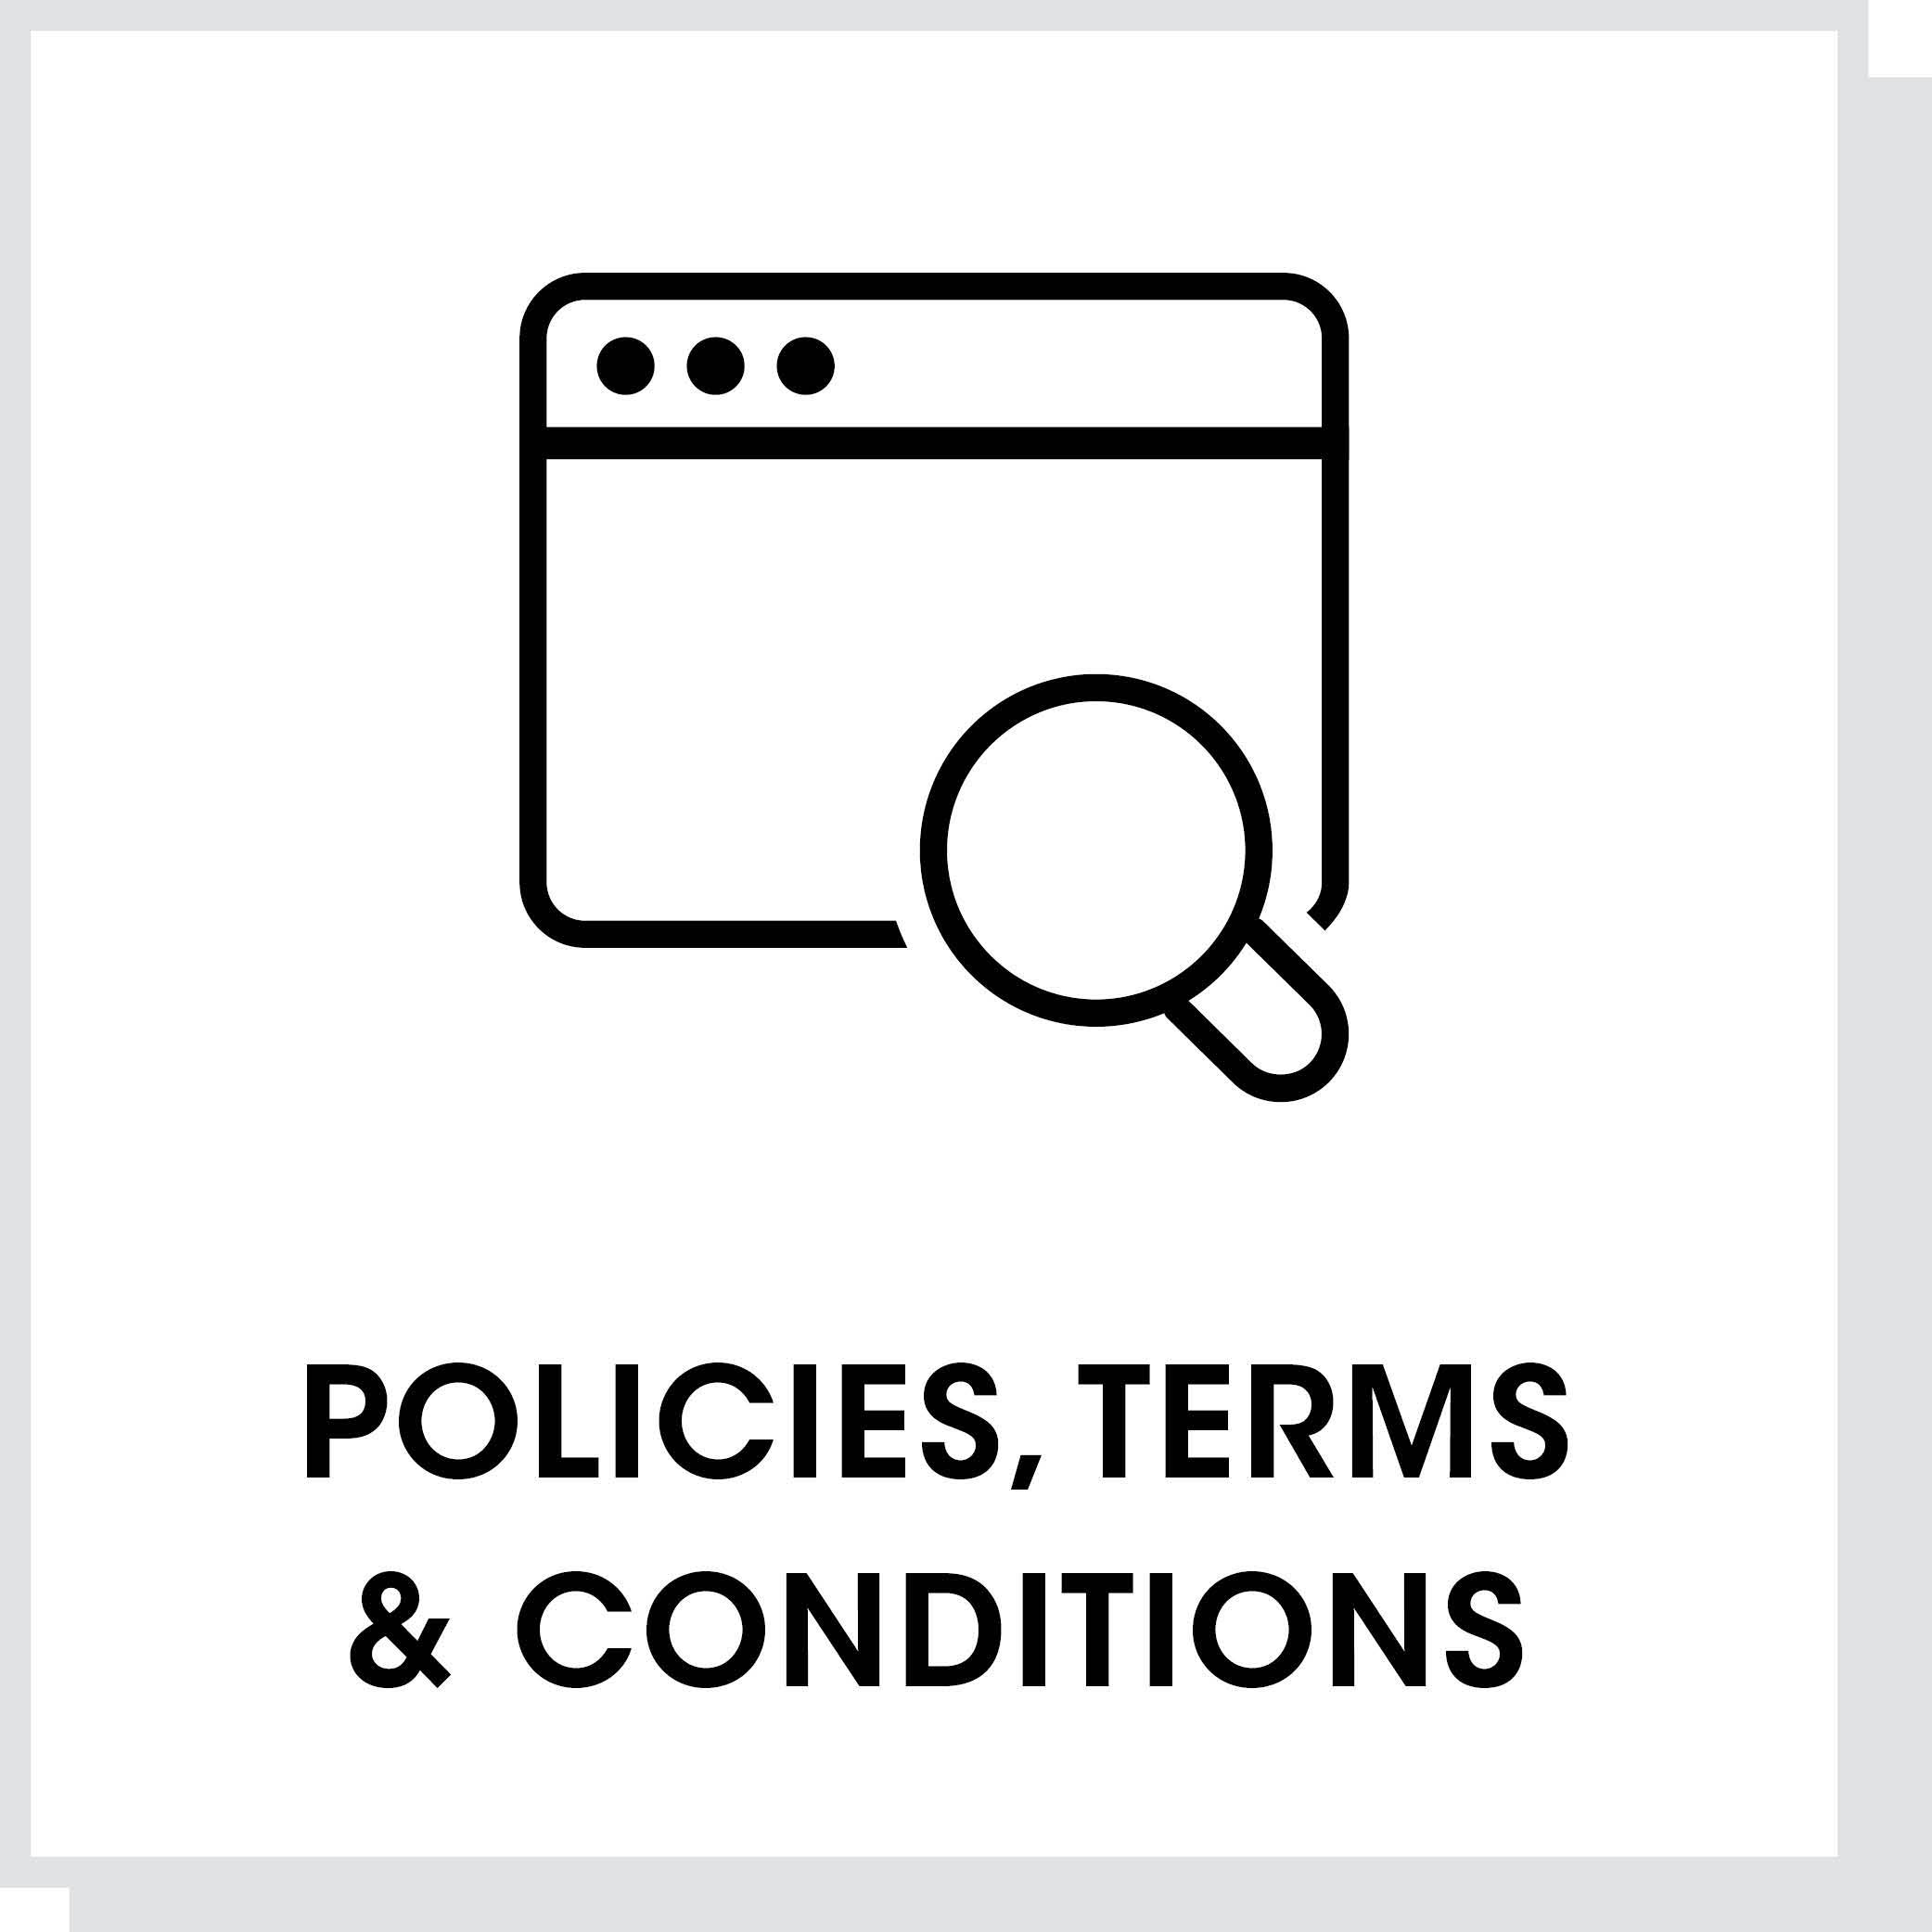 Policies, Terms, & Conditions